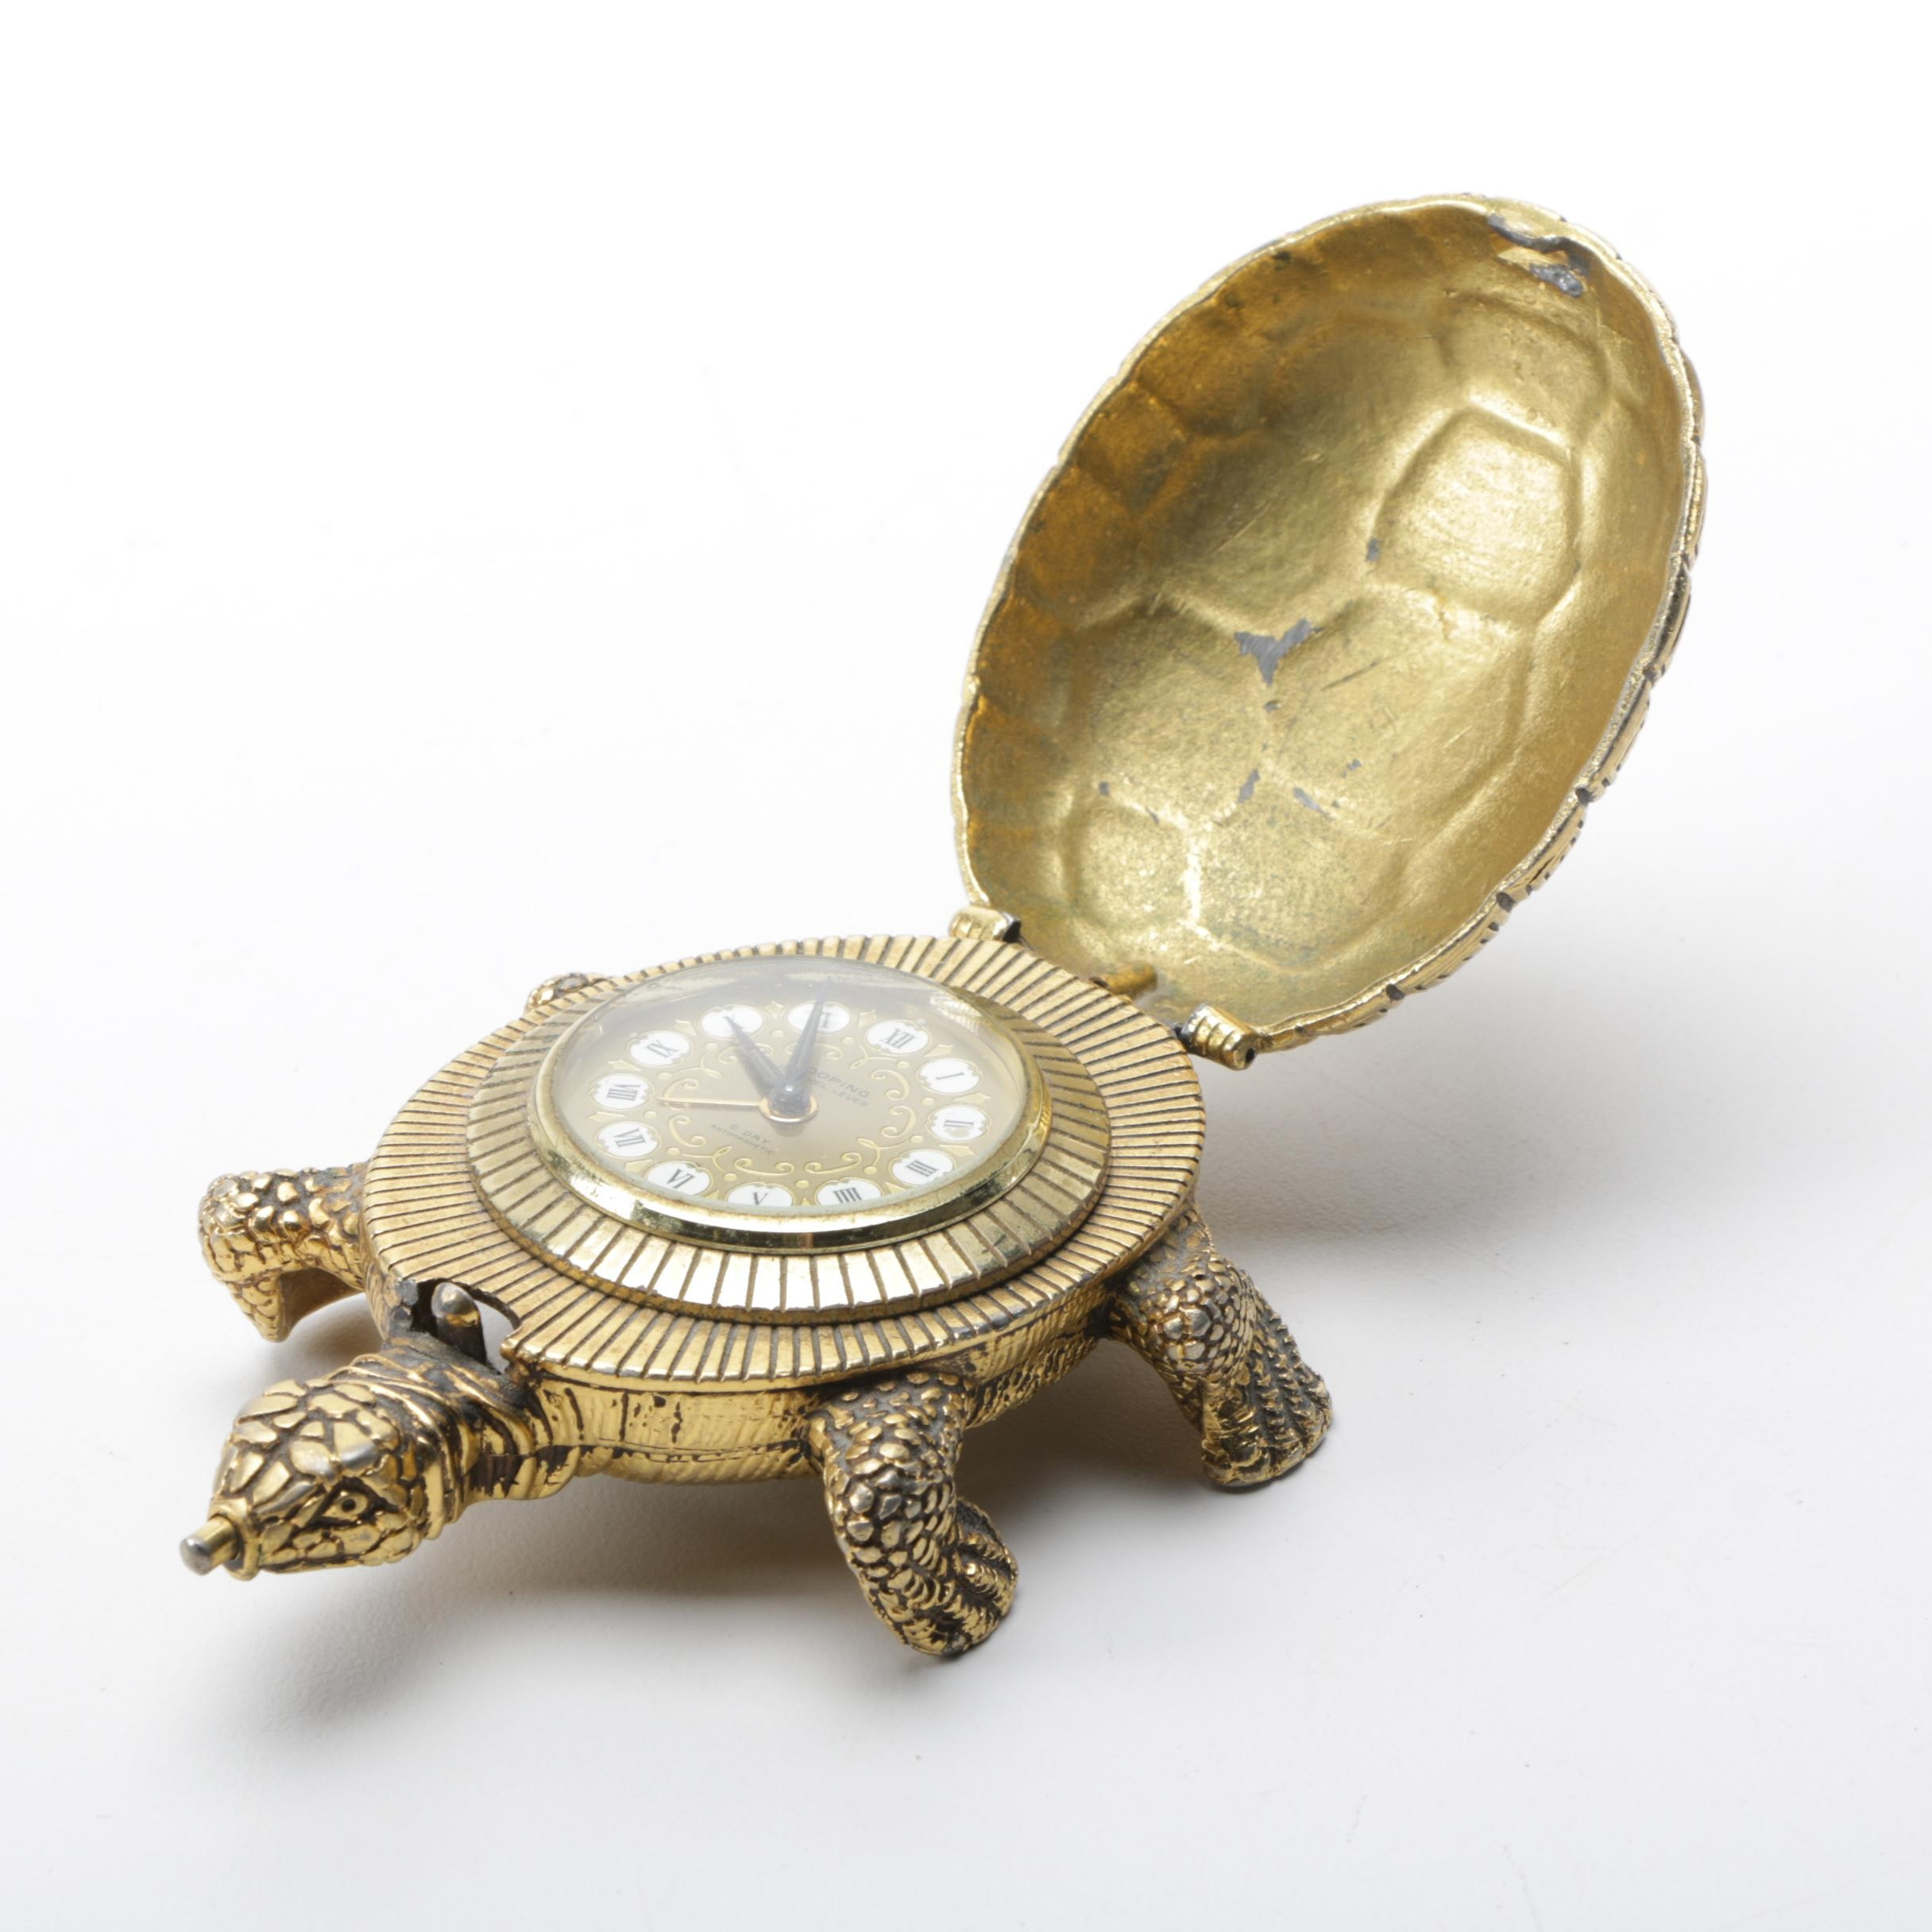 Gilded Turtle Clock by Looping